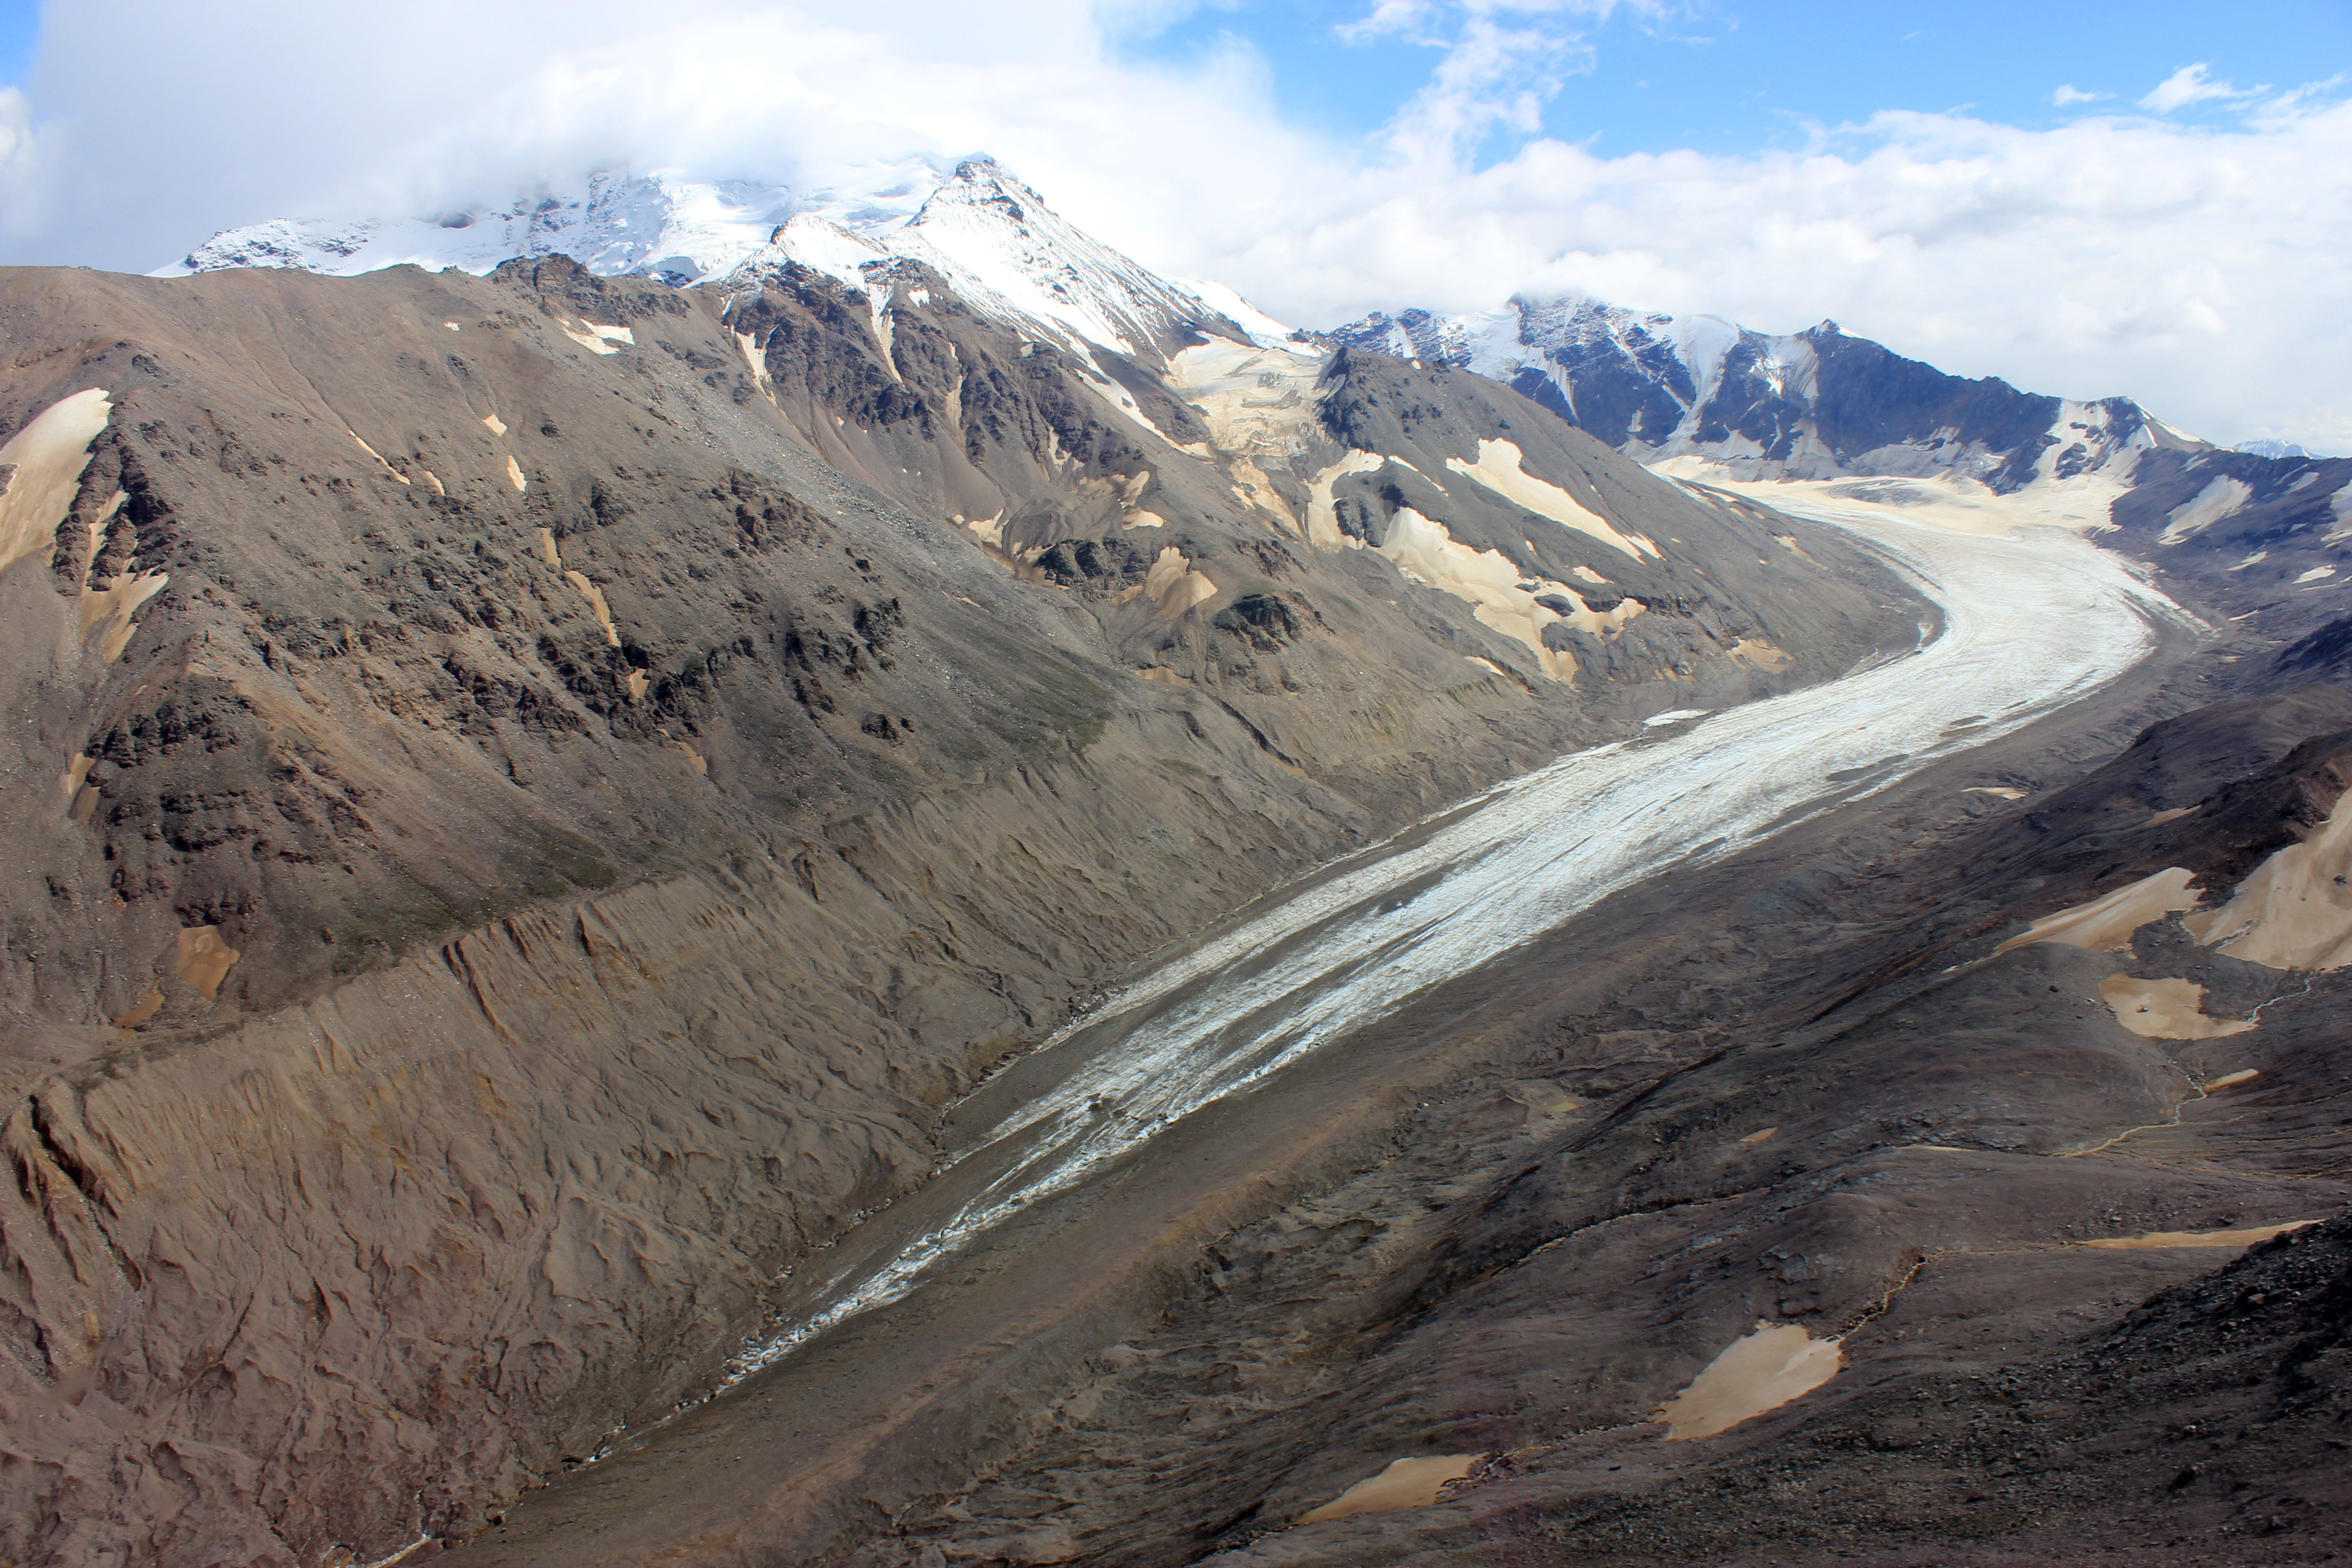 Alaska's small high-mountain glaciers play a big role in groundwater and river systems